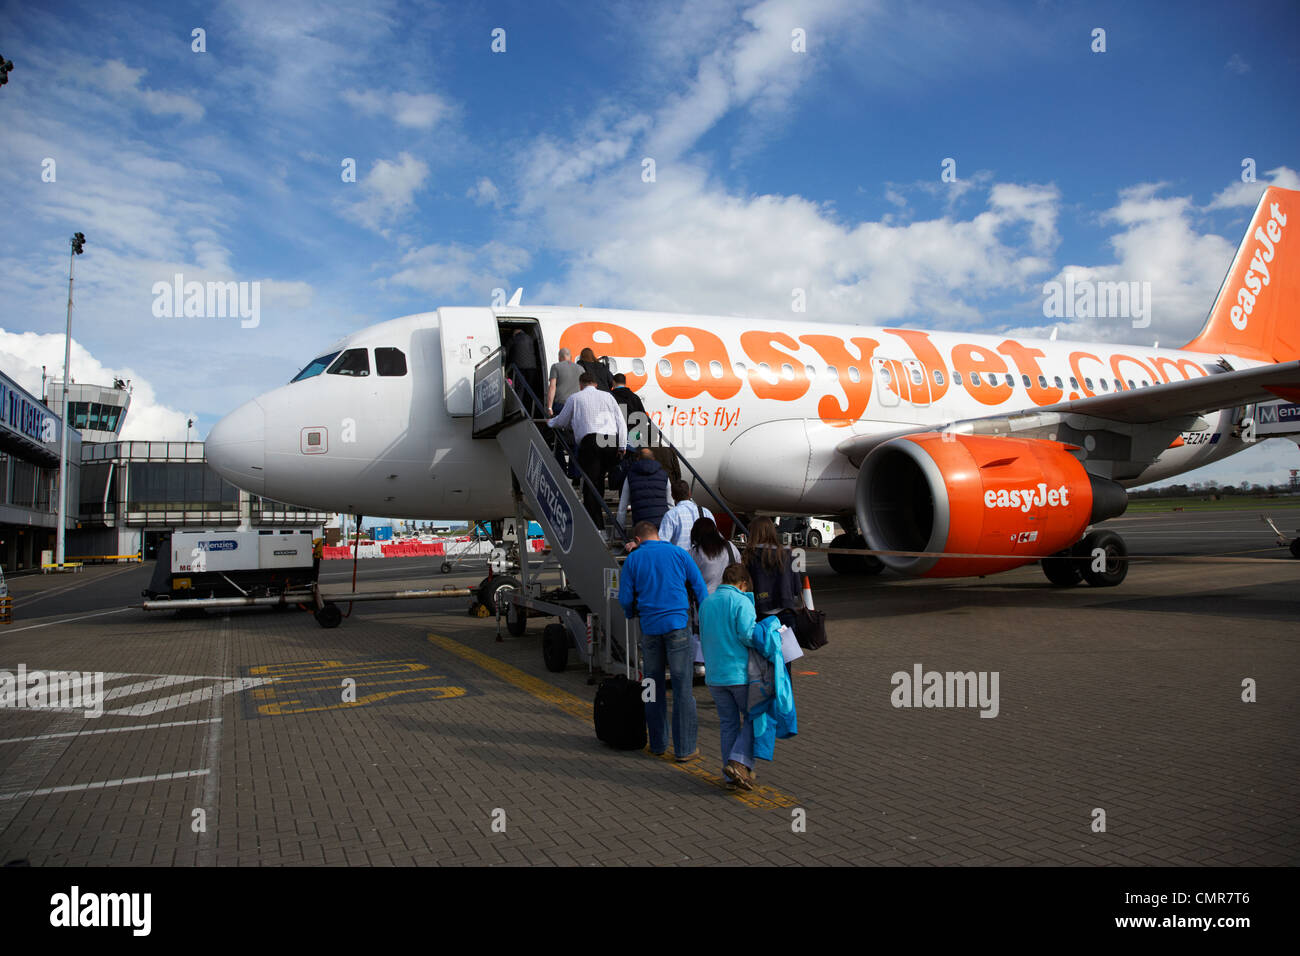 passengers boarding easyjet aircraft at belfast international airport northern ireland uk. - Stock Image